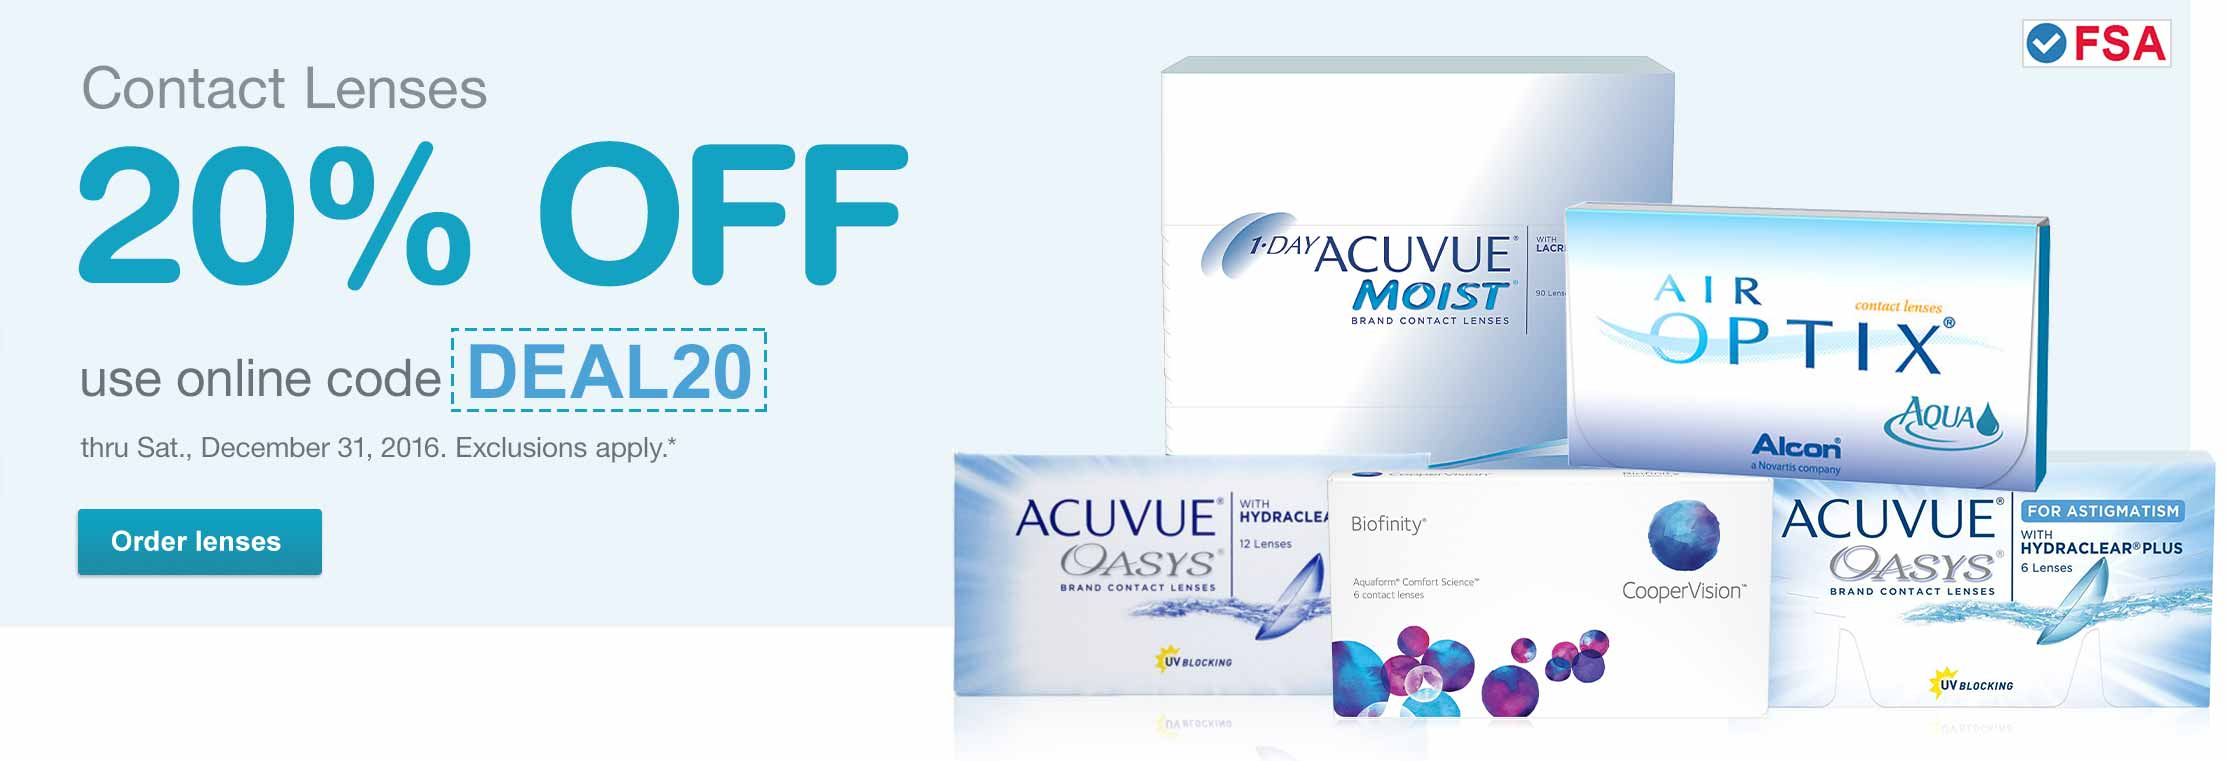 FSA approved. Contact Lenses 20% OFF use online code DEAL20 thru Sat., December 31, 2016. Exclusions apply.* Order lenses.